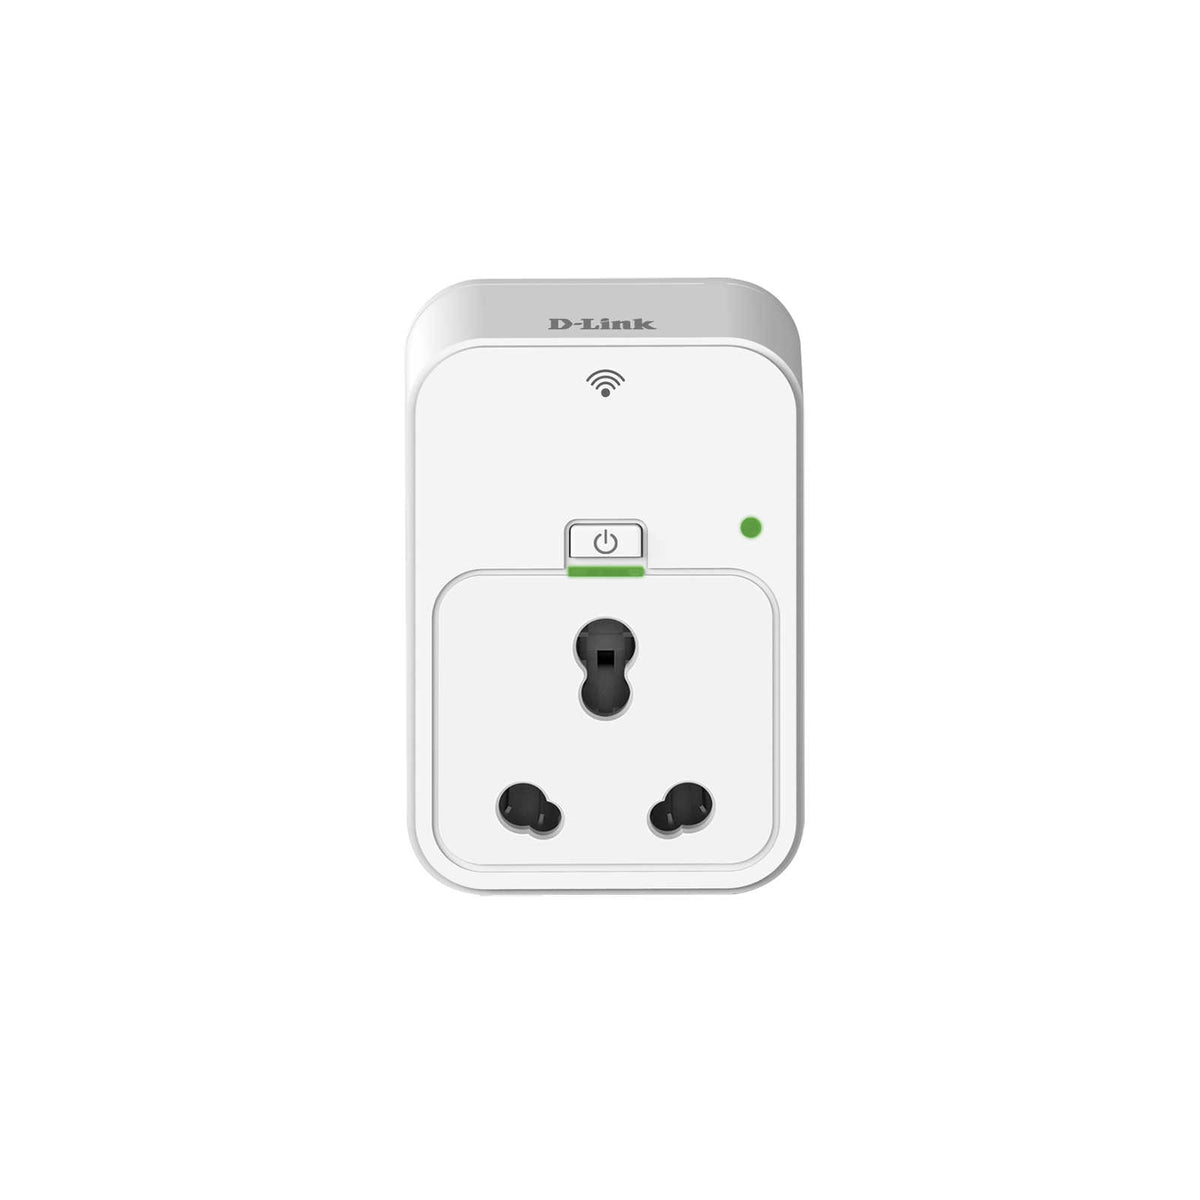 Buy D-Link DSP-W215 mydlink Wi-Fi Smart Plug at Best Price